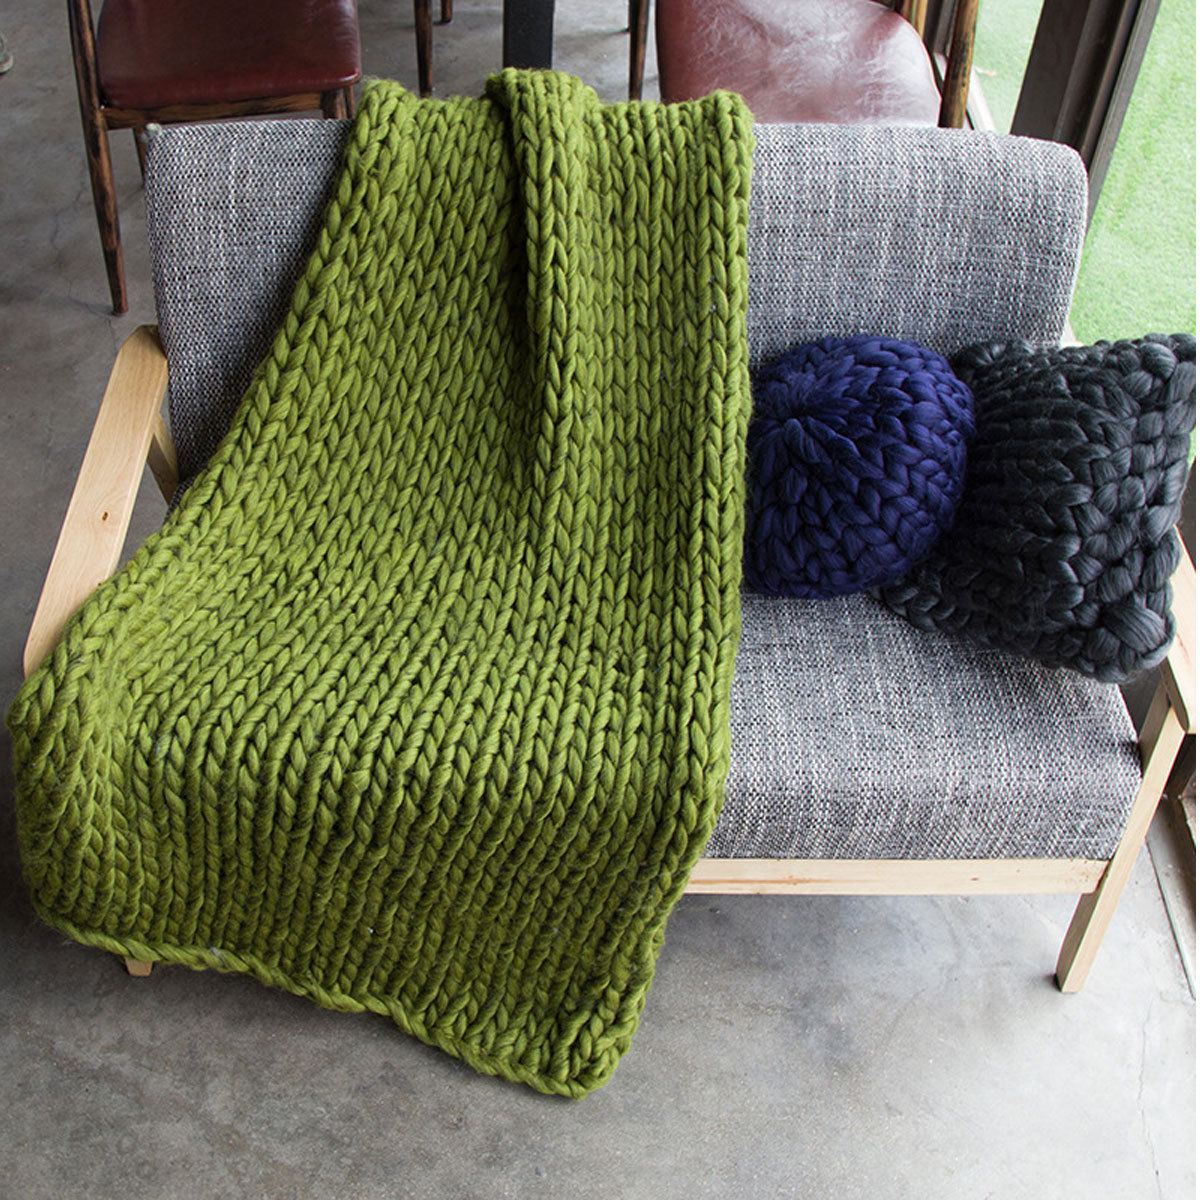 soft chairs spread the hips steamer chair covers australia fluffy chunky knitted thick crochet blanket hand yarn